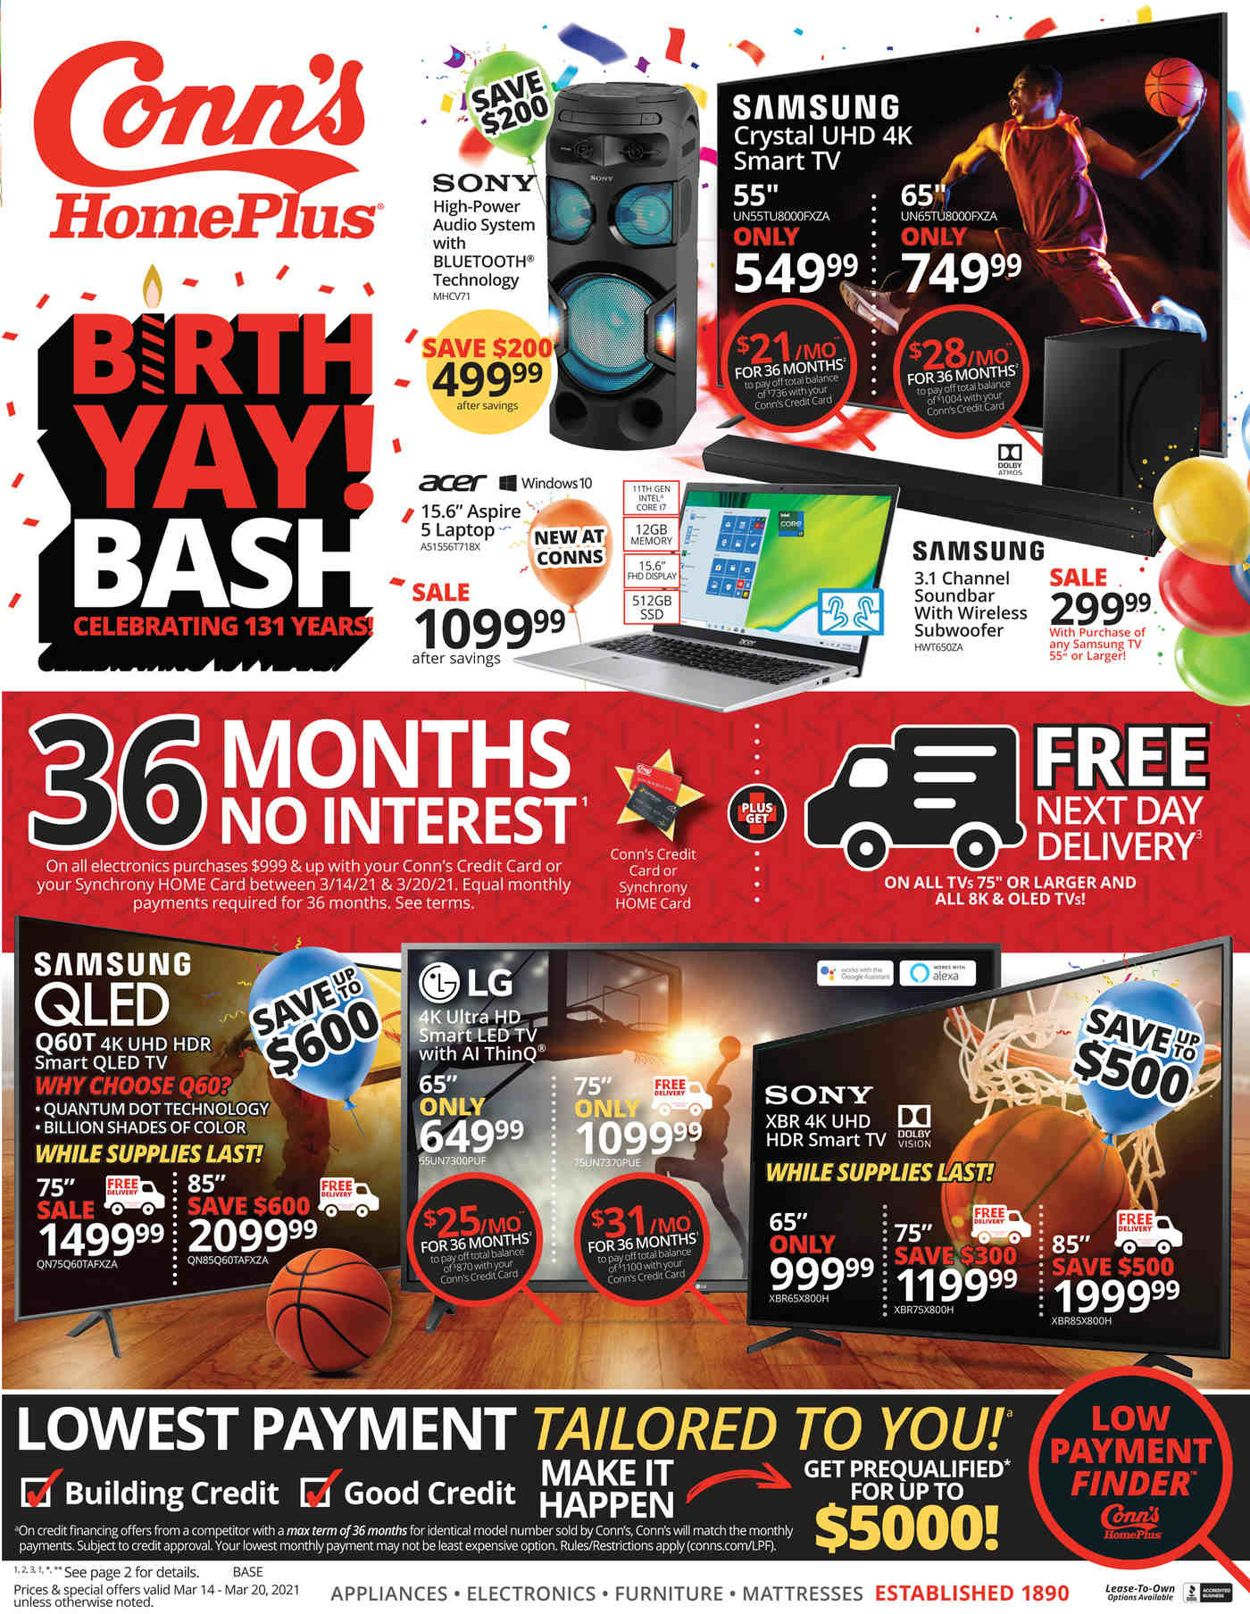 Conn's Home Plus Weekly Ad Circular - valid 03/14-03/20/2021